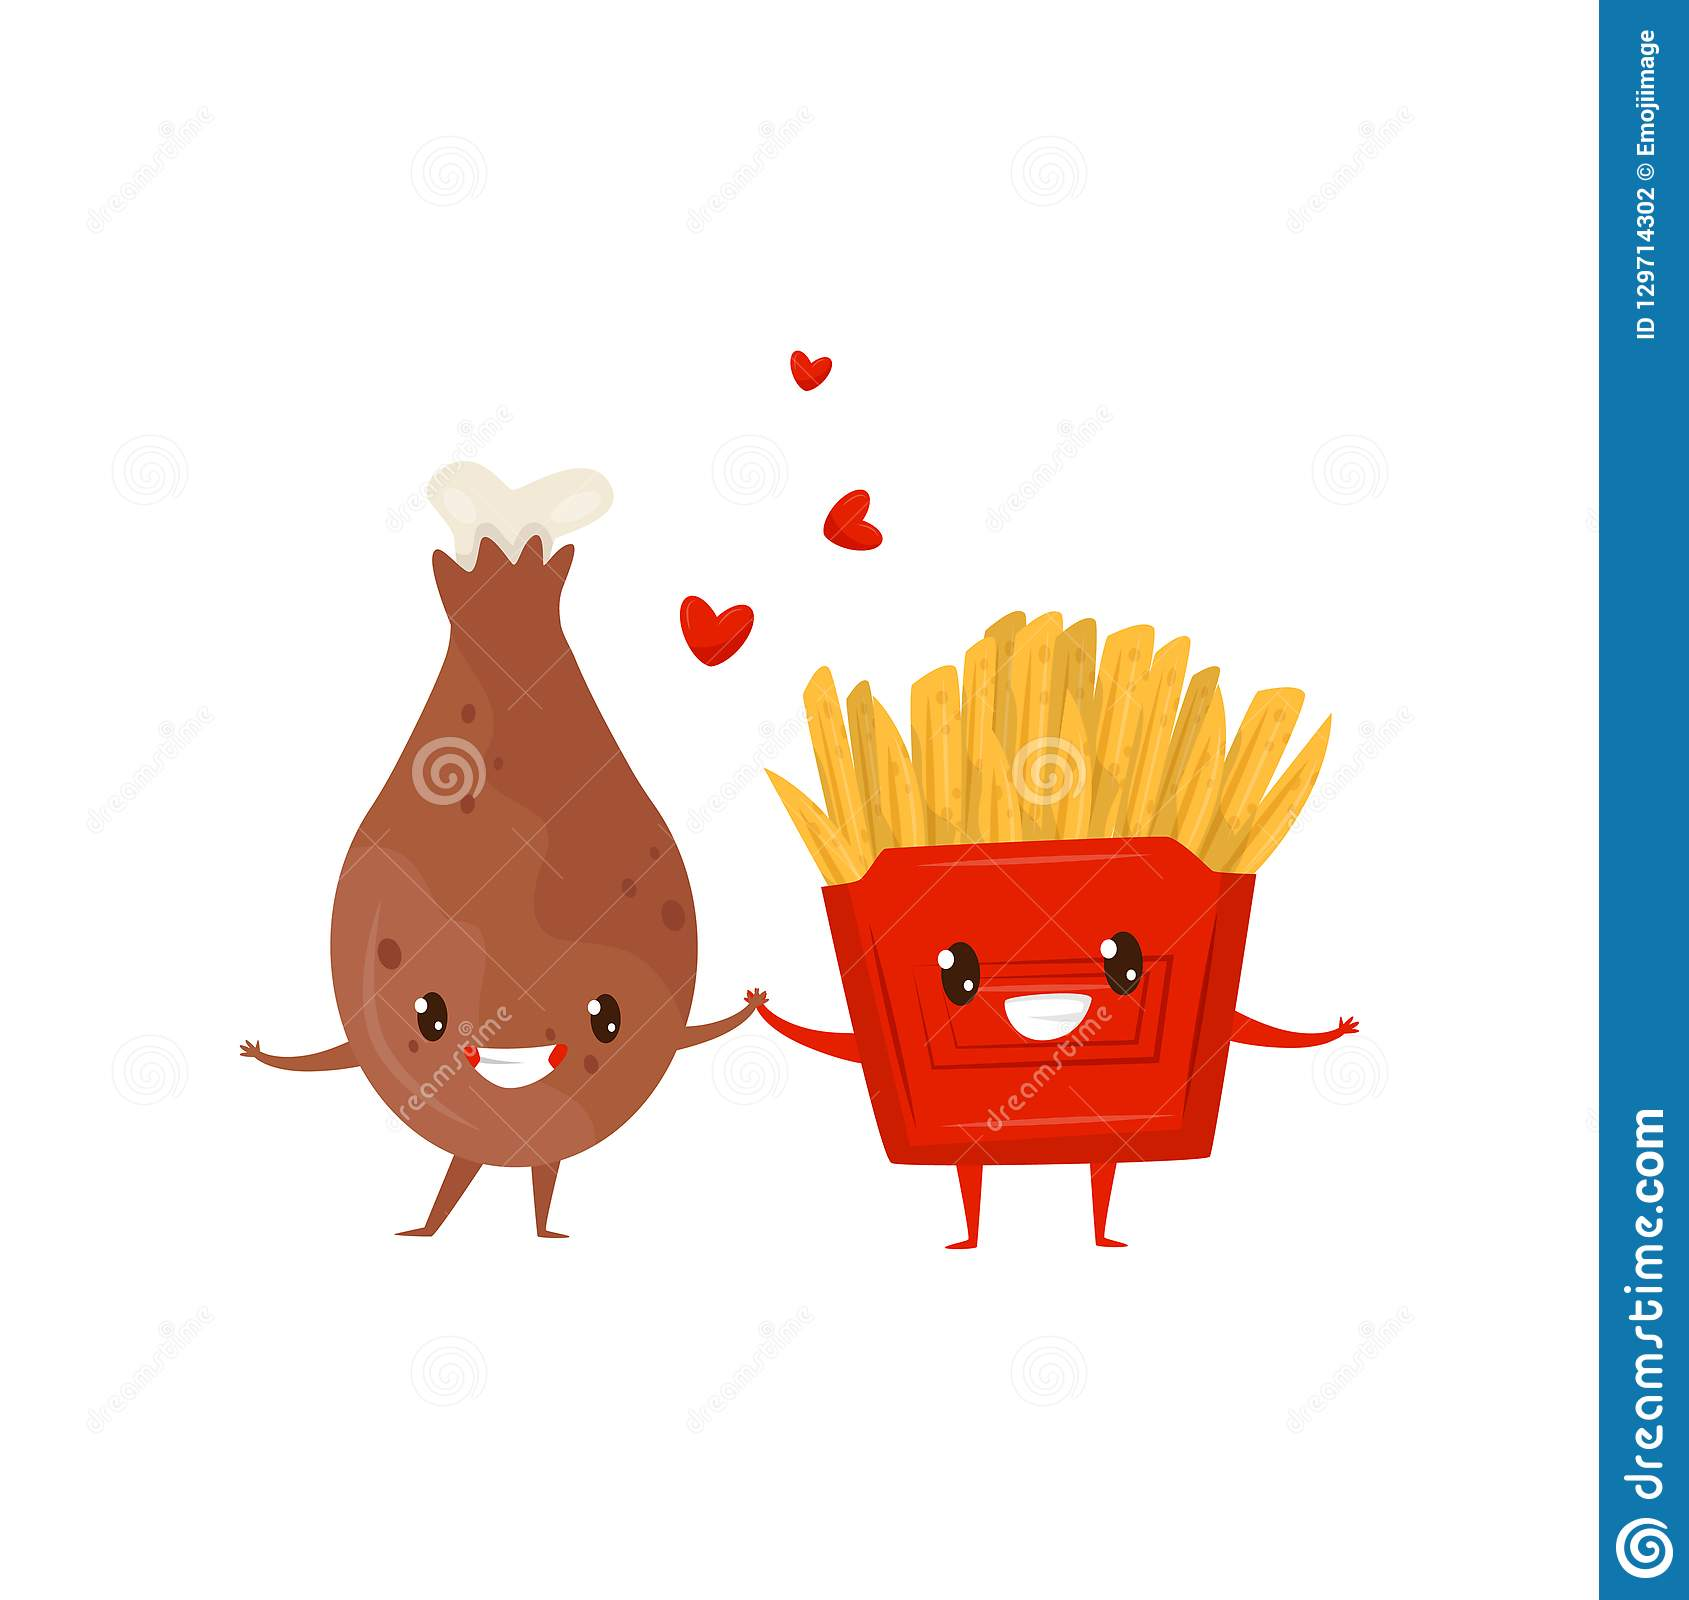 Fried chicken drumstick and french fries are friends forever, fast food menu funny cartoon characters vector